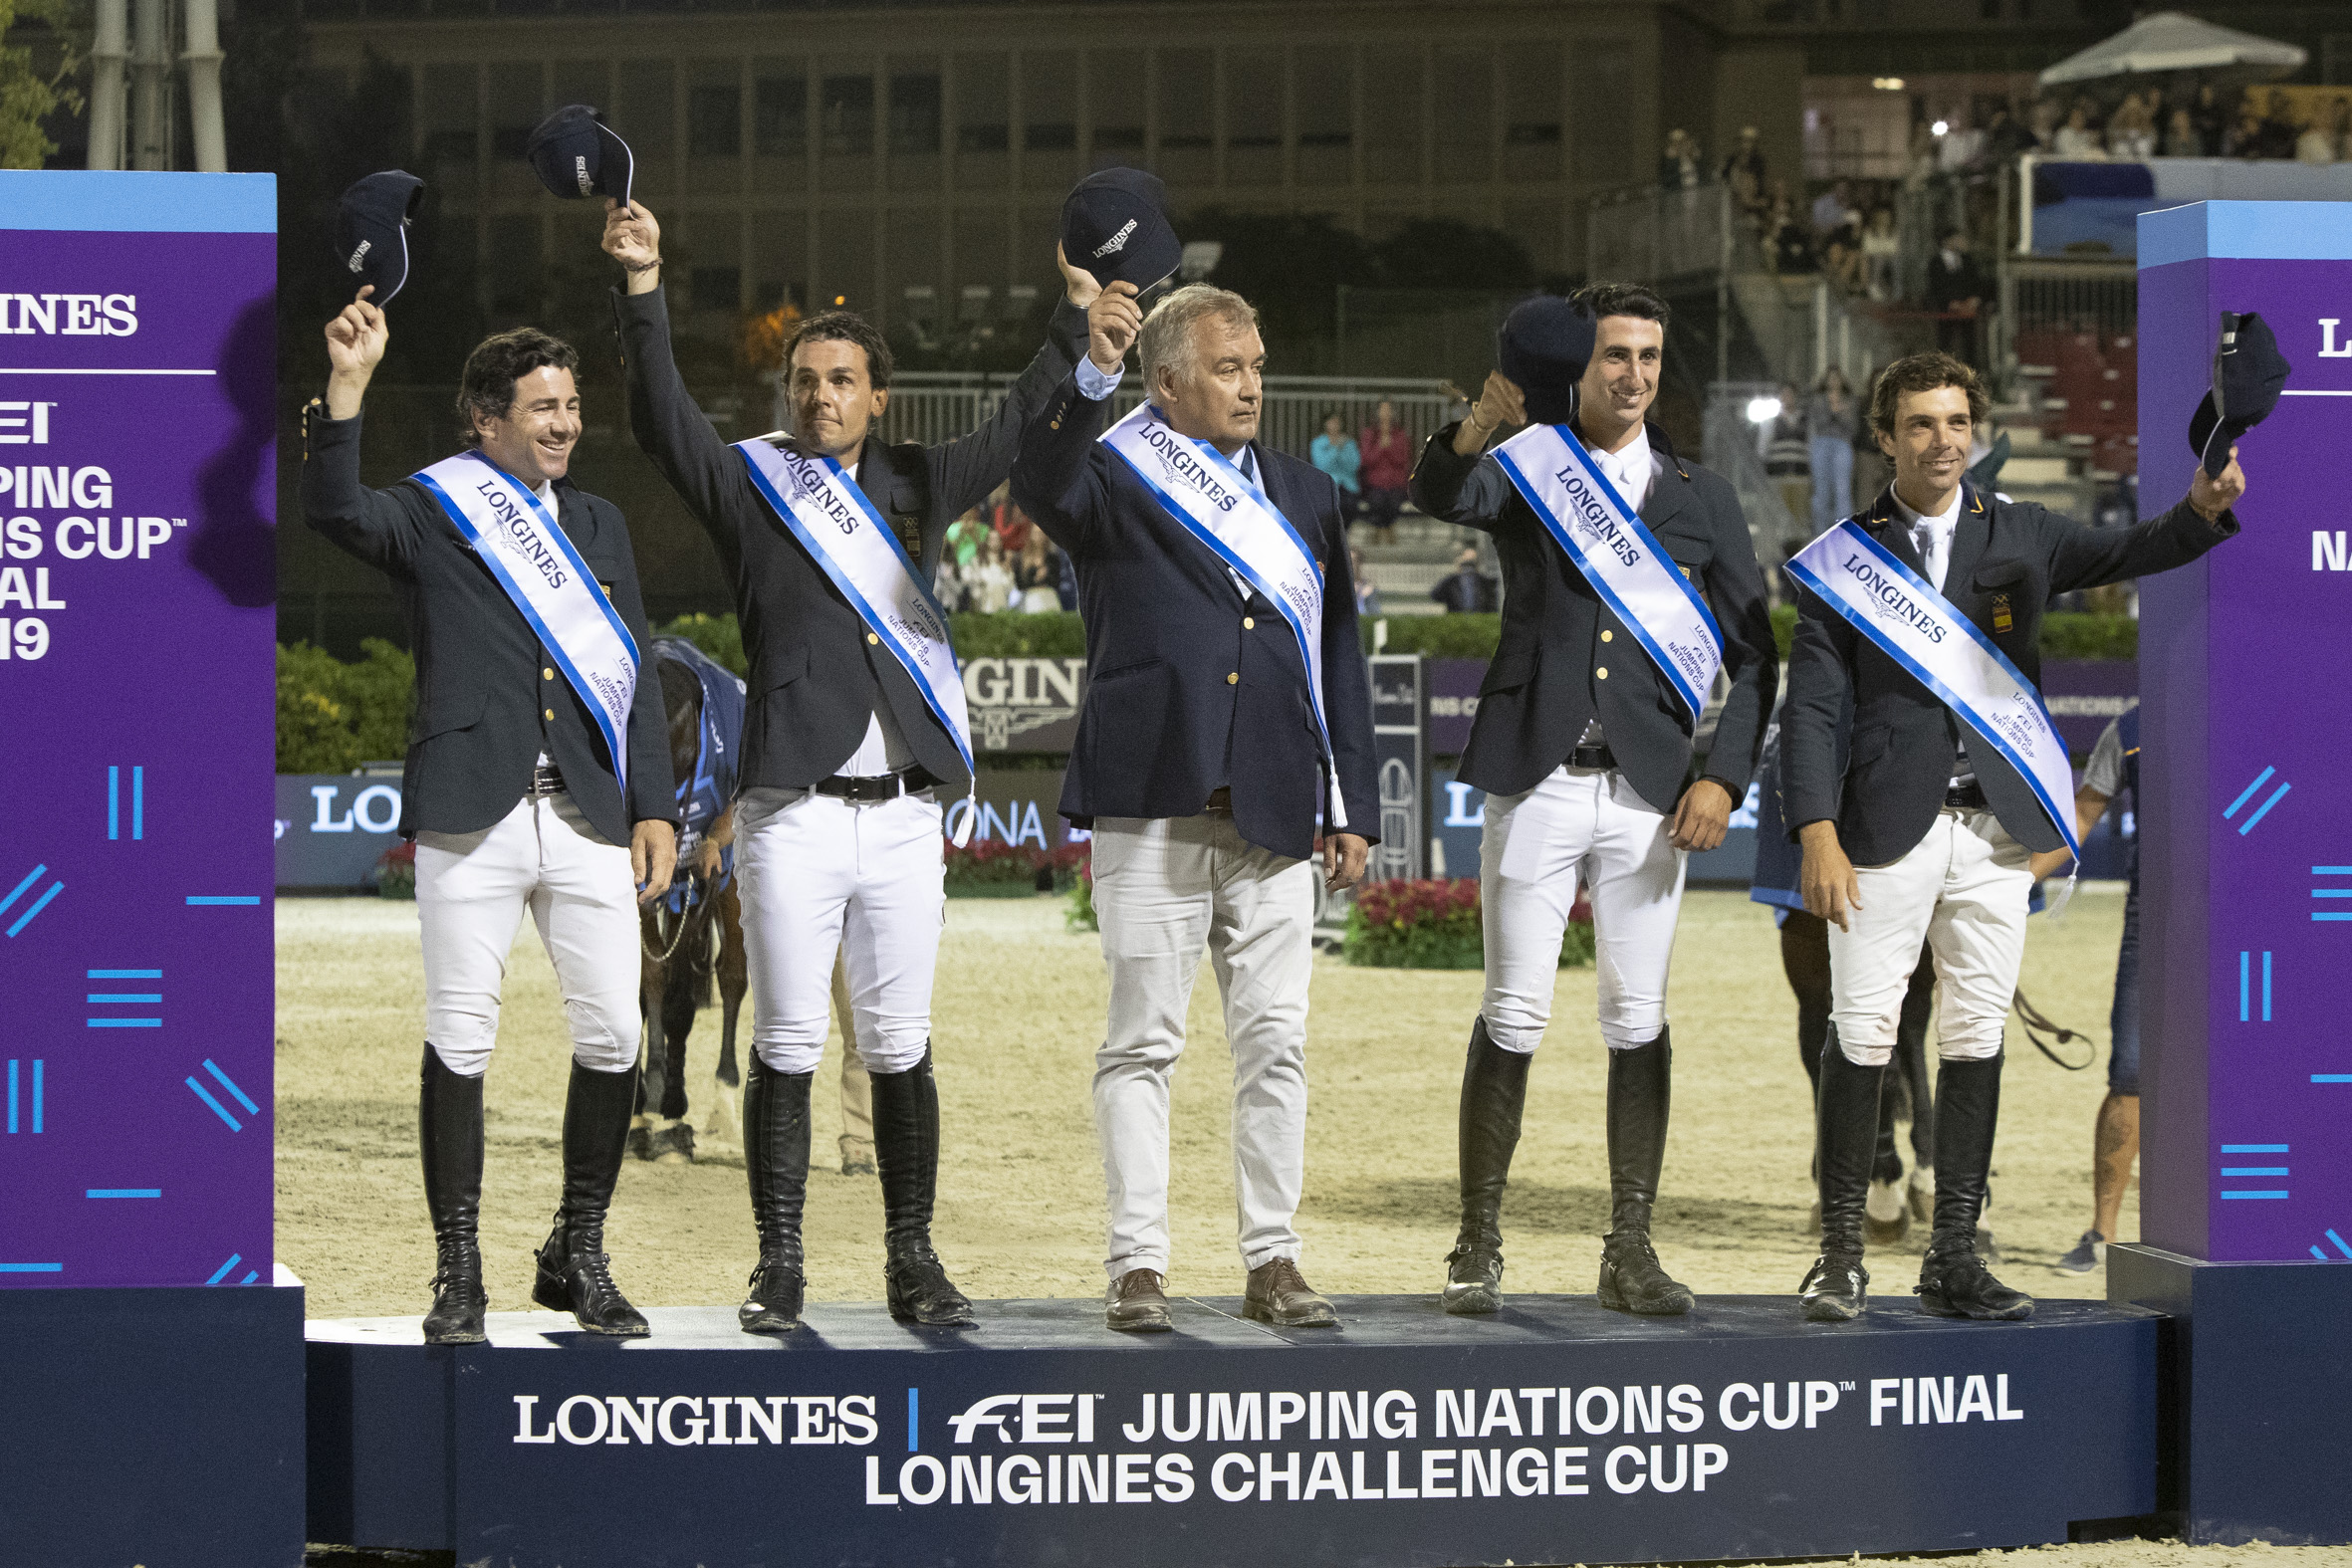 Spain wins the Longines Challenge Cup